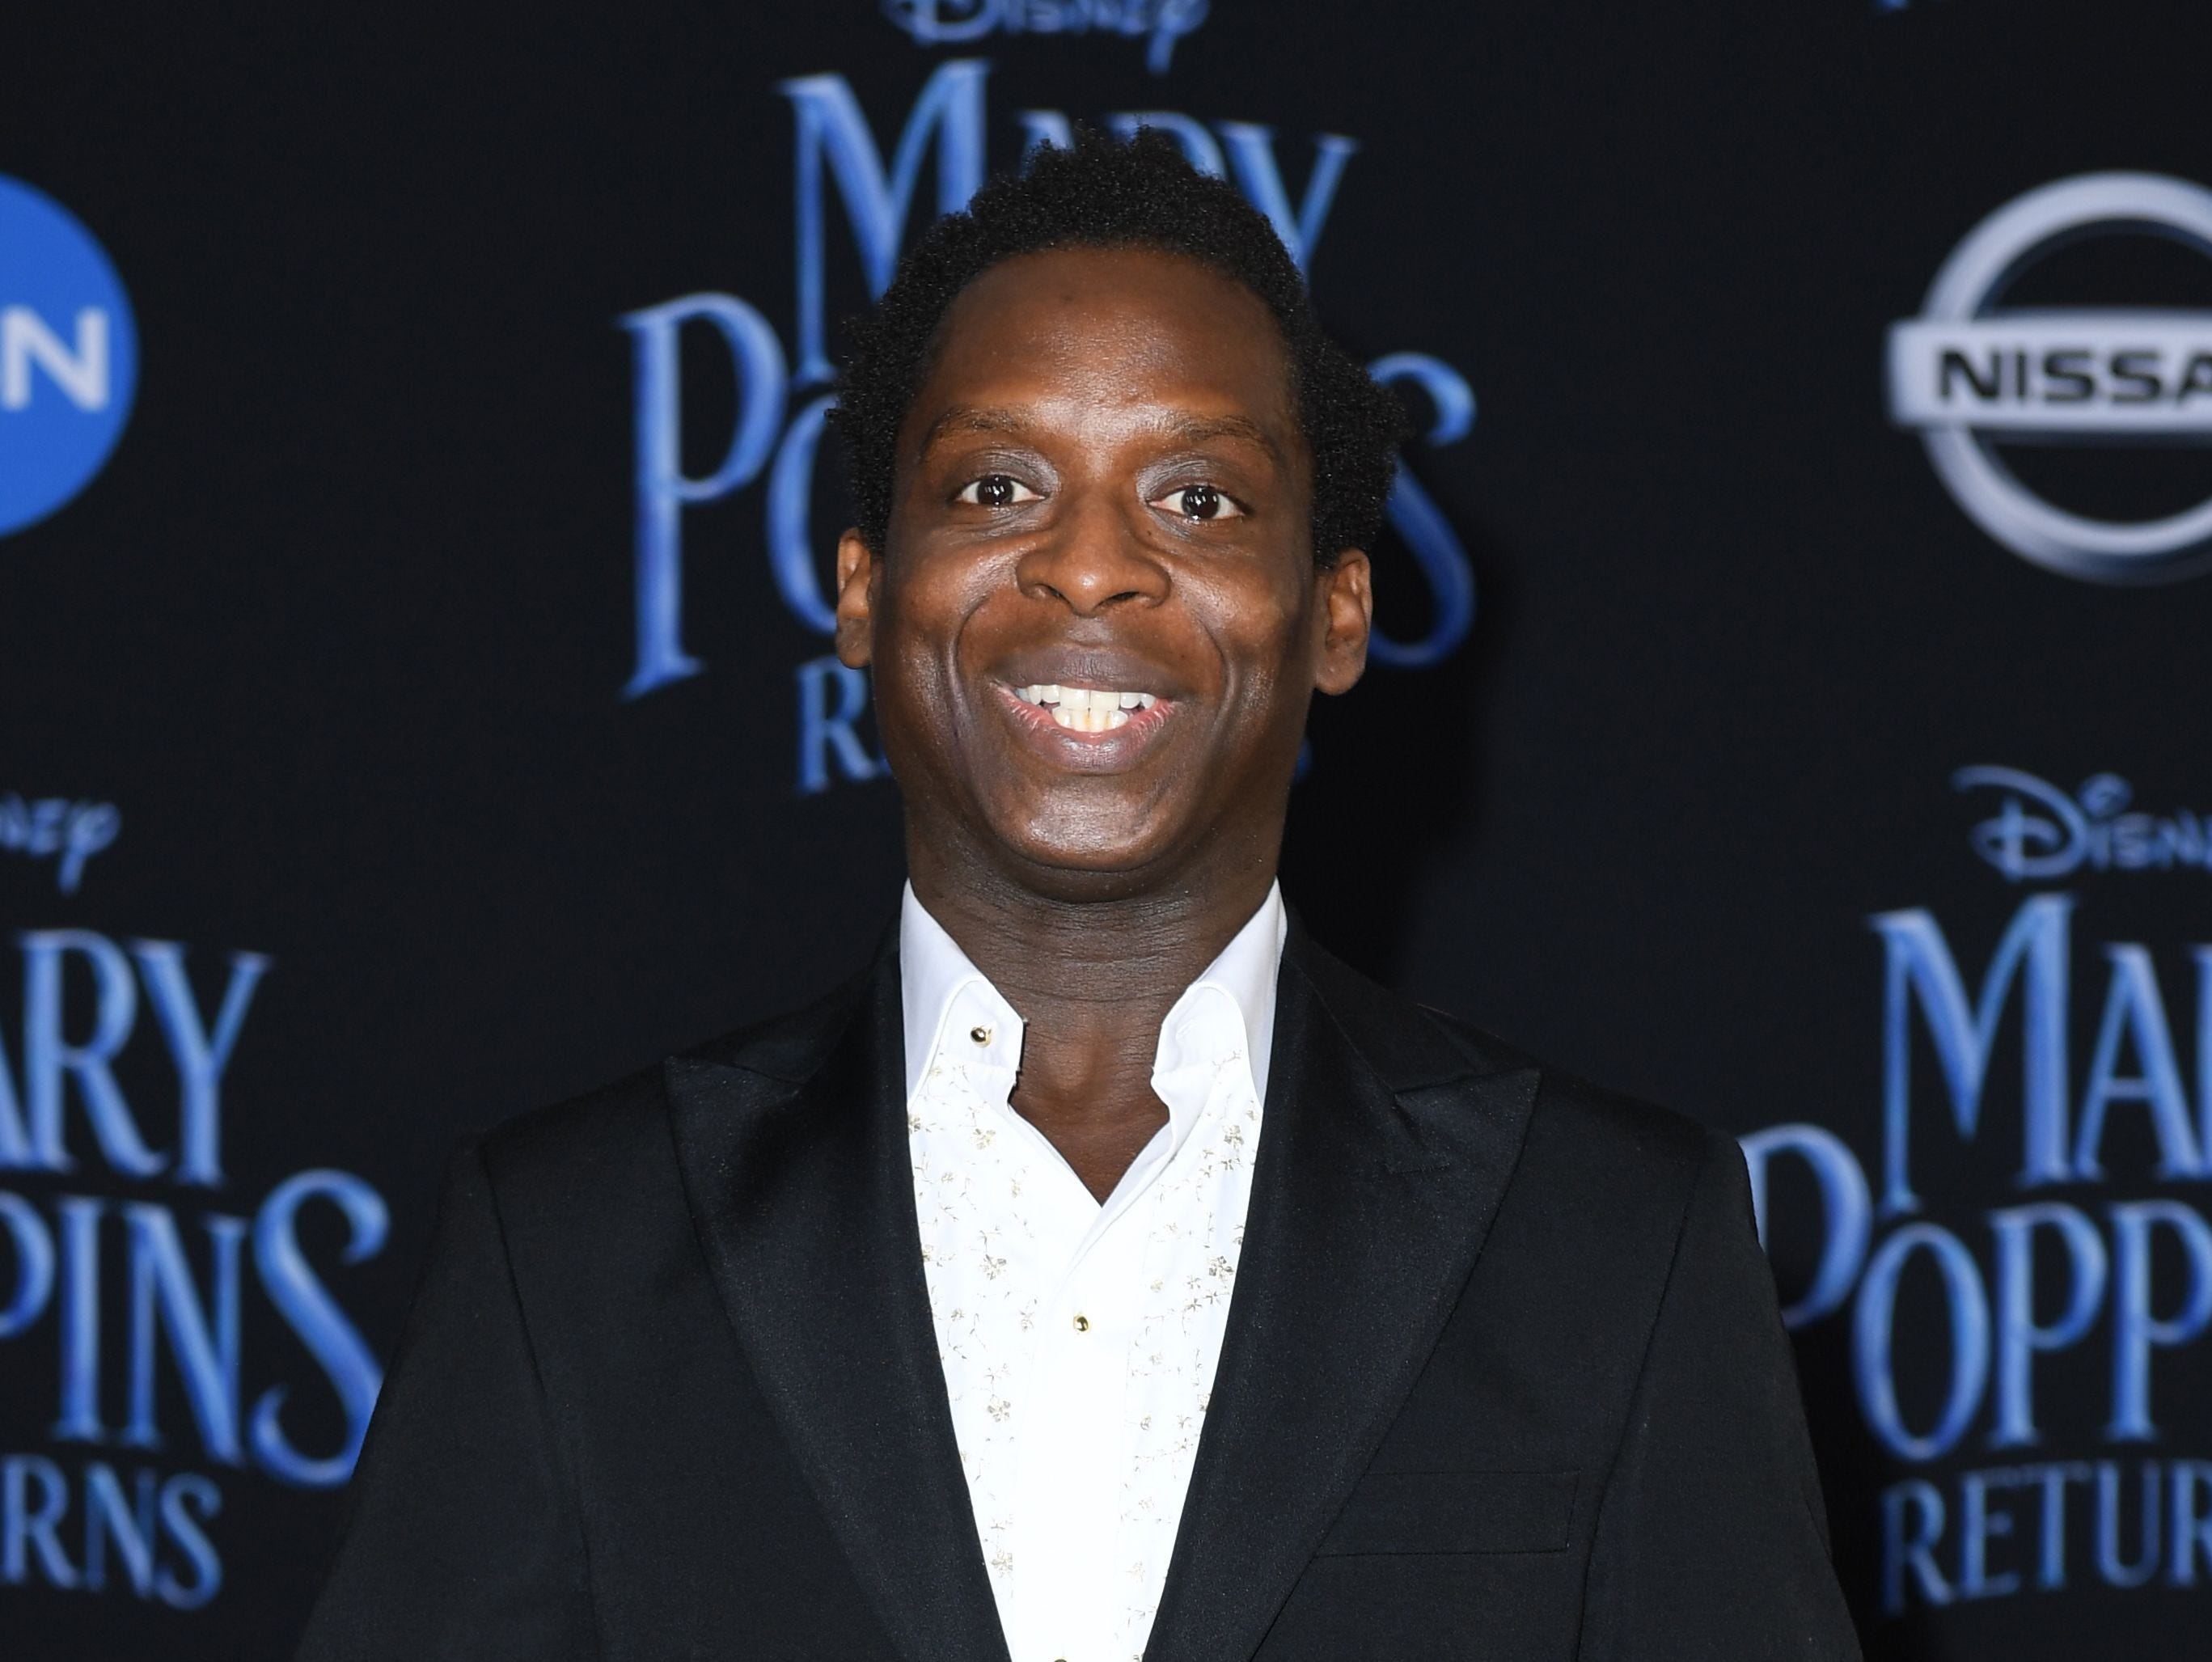 """Ghanaian born British actor Kobna Holdbrook-Smith arrives for the world premiere of Disney's """"Mary Poppins Returns"""" at the Dolby theatre in Hollywood on November 29, 2018. (Photo by VALERIE MACON / AFP)VALERIE MACON/AFP/Getty Images ORG XMIT: 'Mary Pop ORIG FILE ID: AFP_1B80TX"""